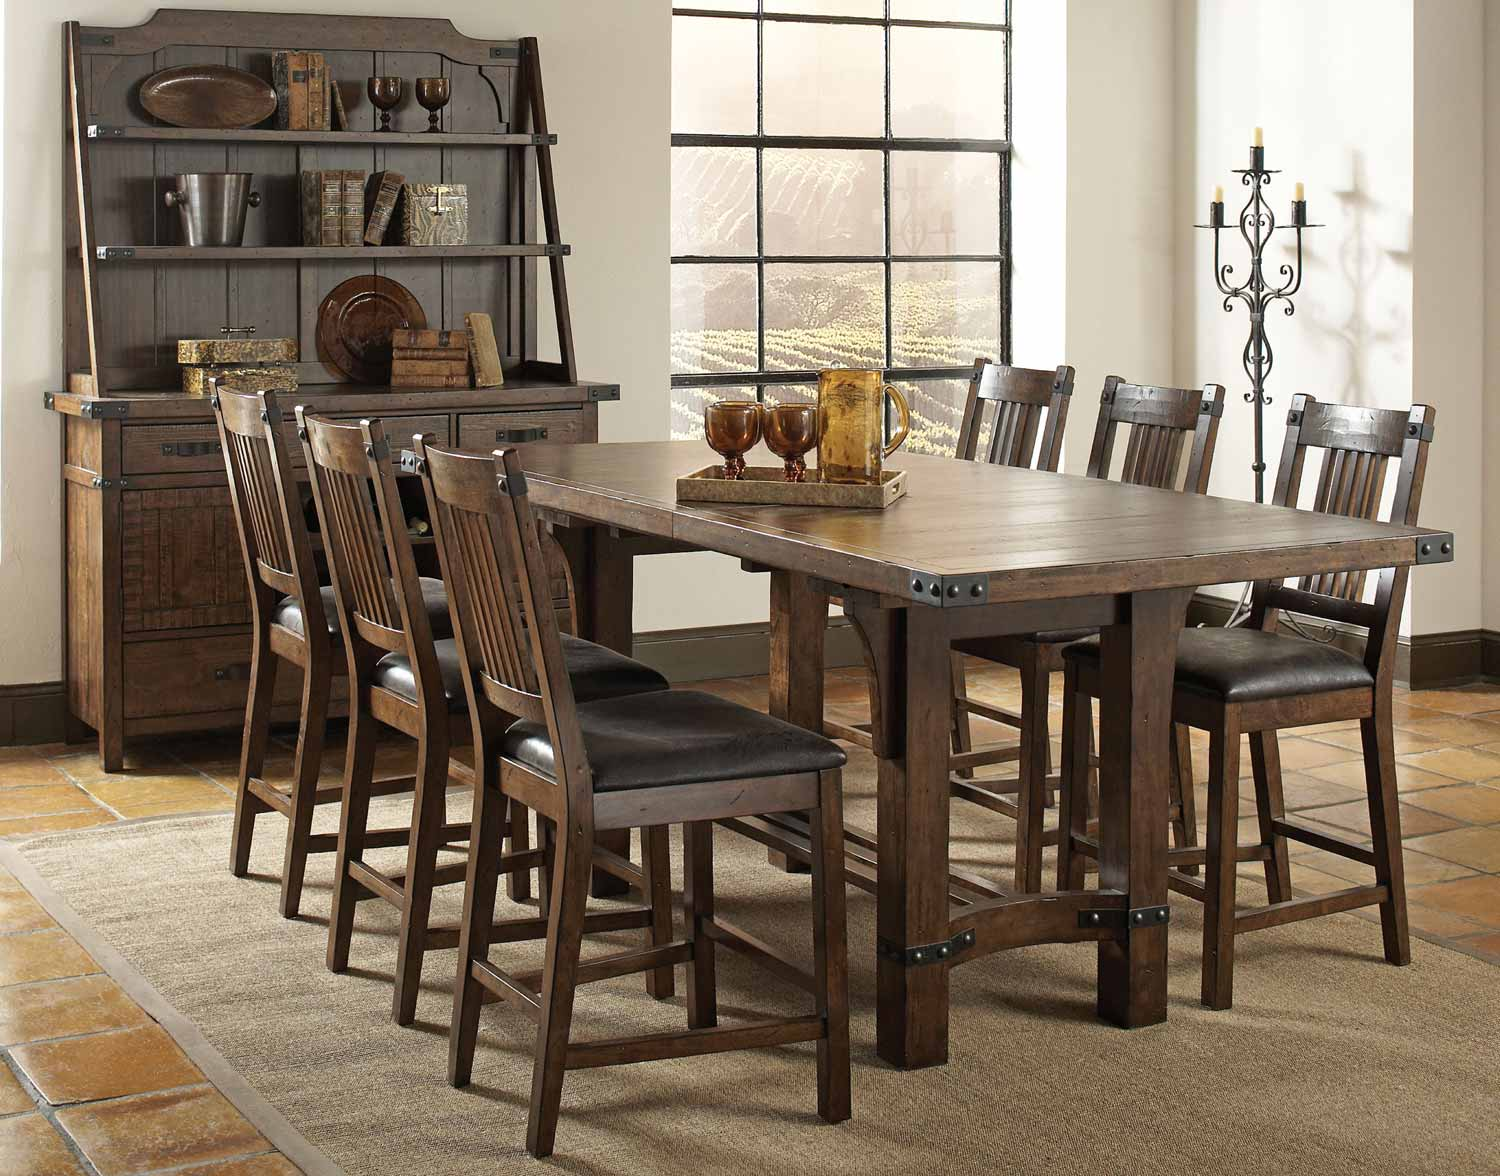 Coaster padima counter height dining set rustic cognac for Rustic dining set